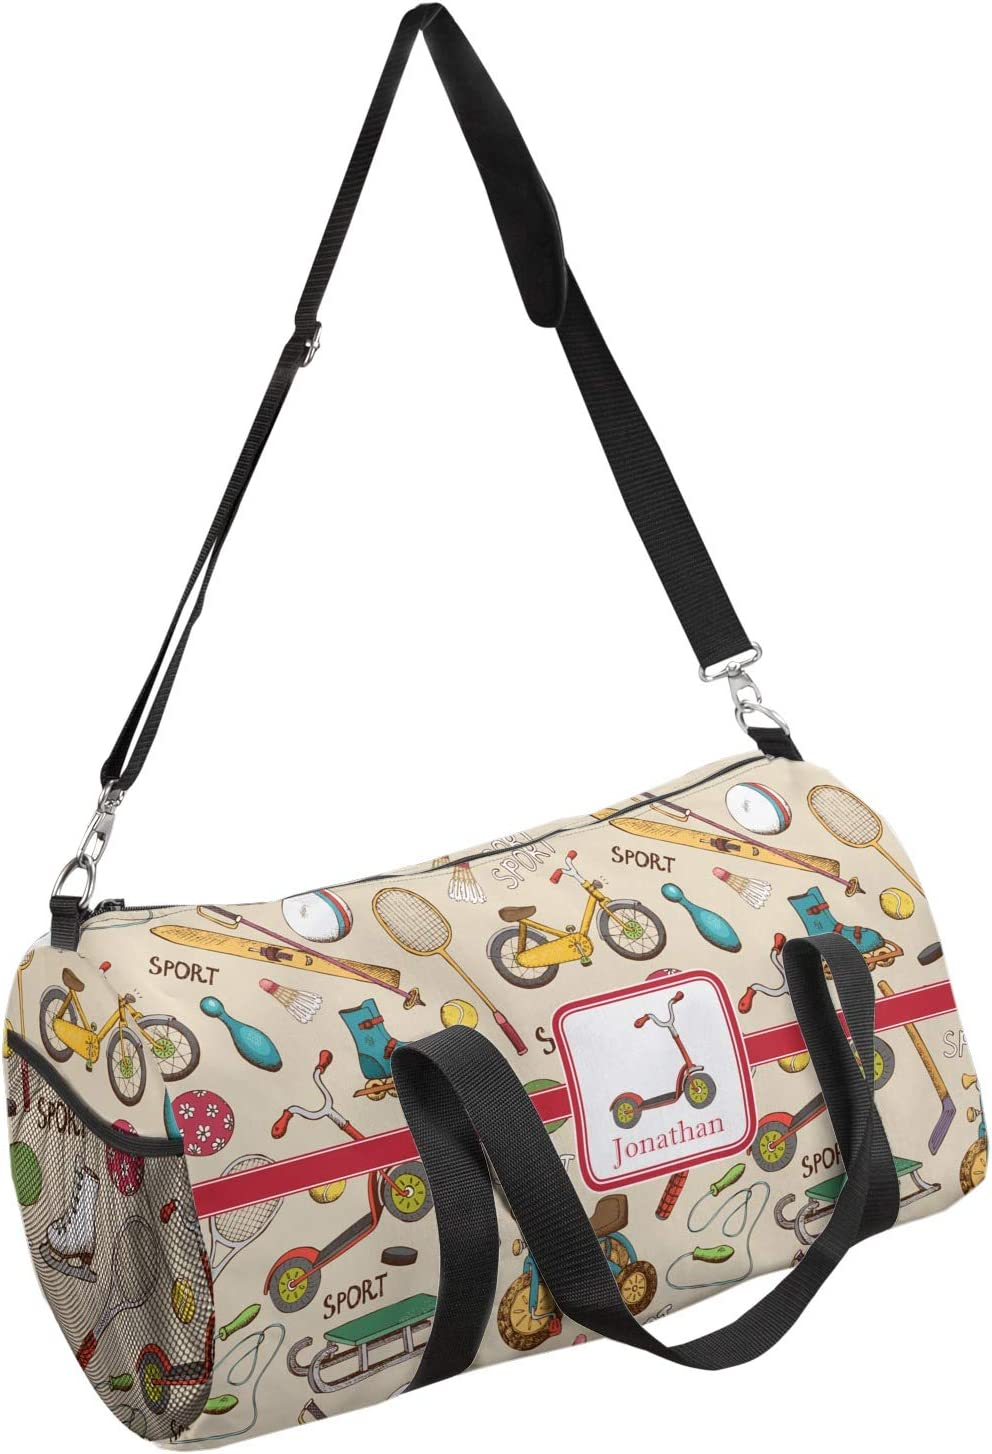 Personalized YouCustomizeIt Vintage Sports Duffel Bag